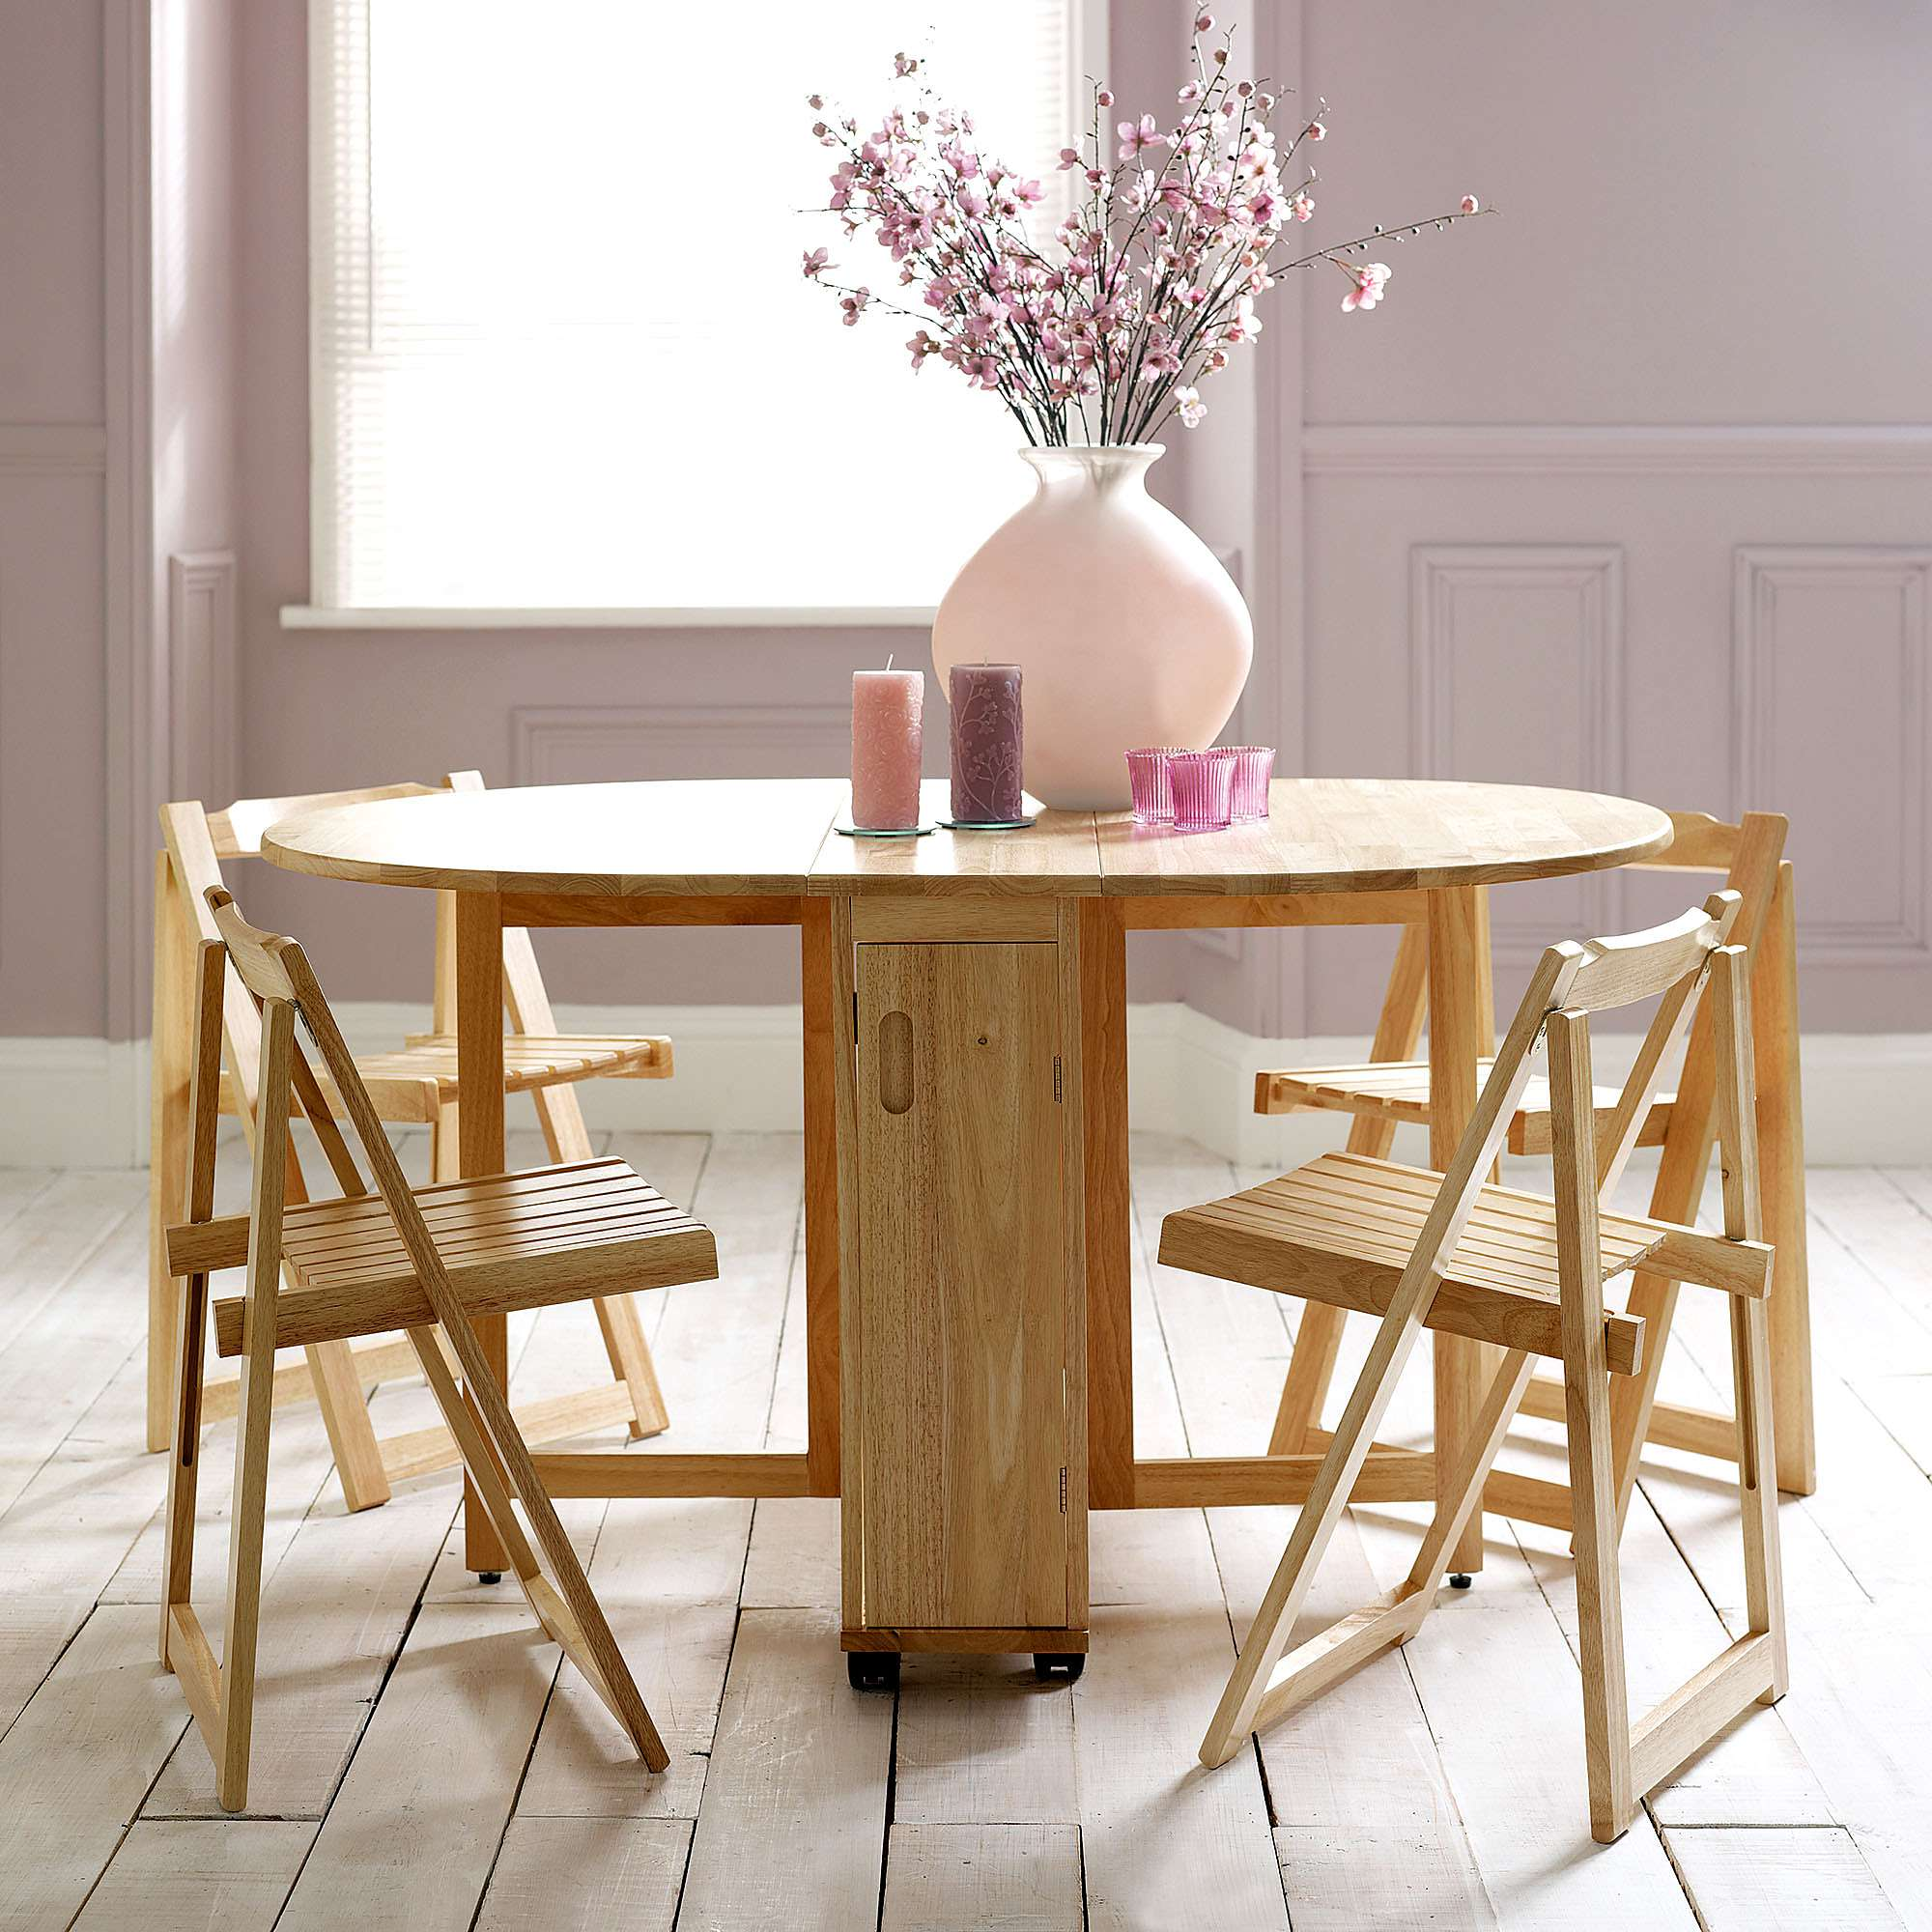 Folding Dining Room Table And Chairs Choose A Folding Dining Table For A Small Space  Adorable Home